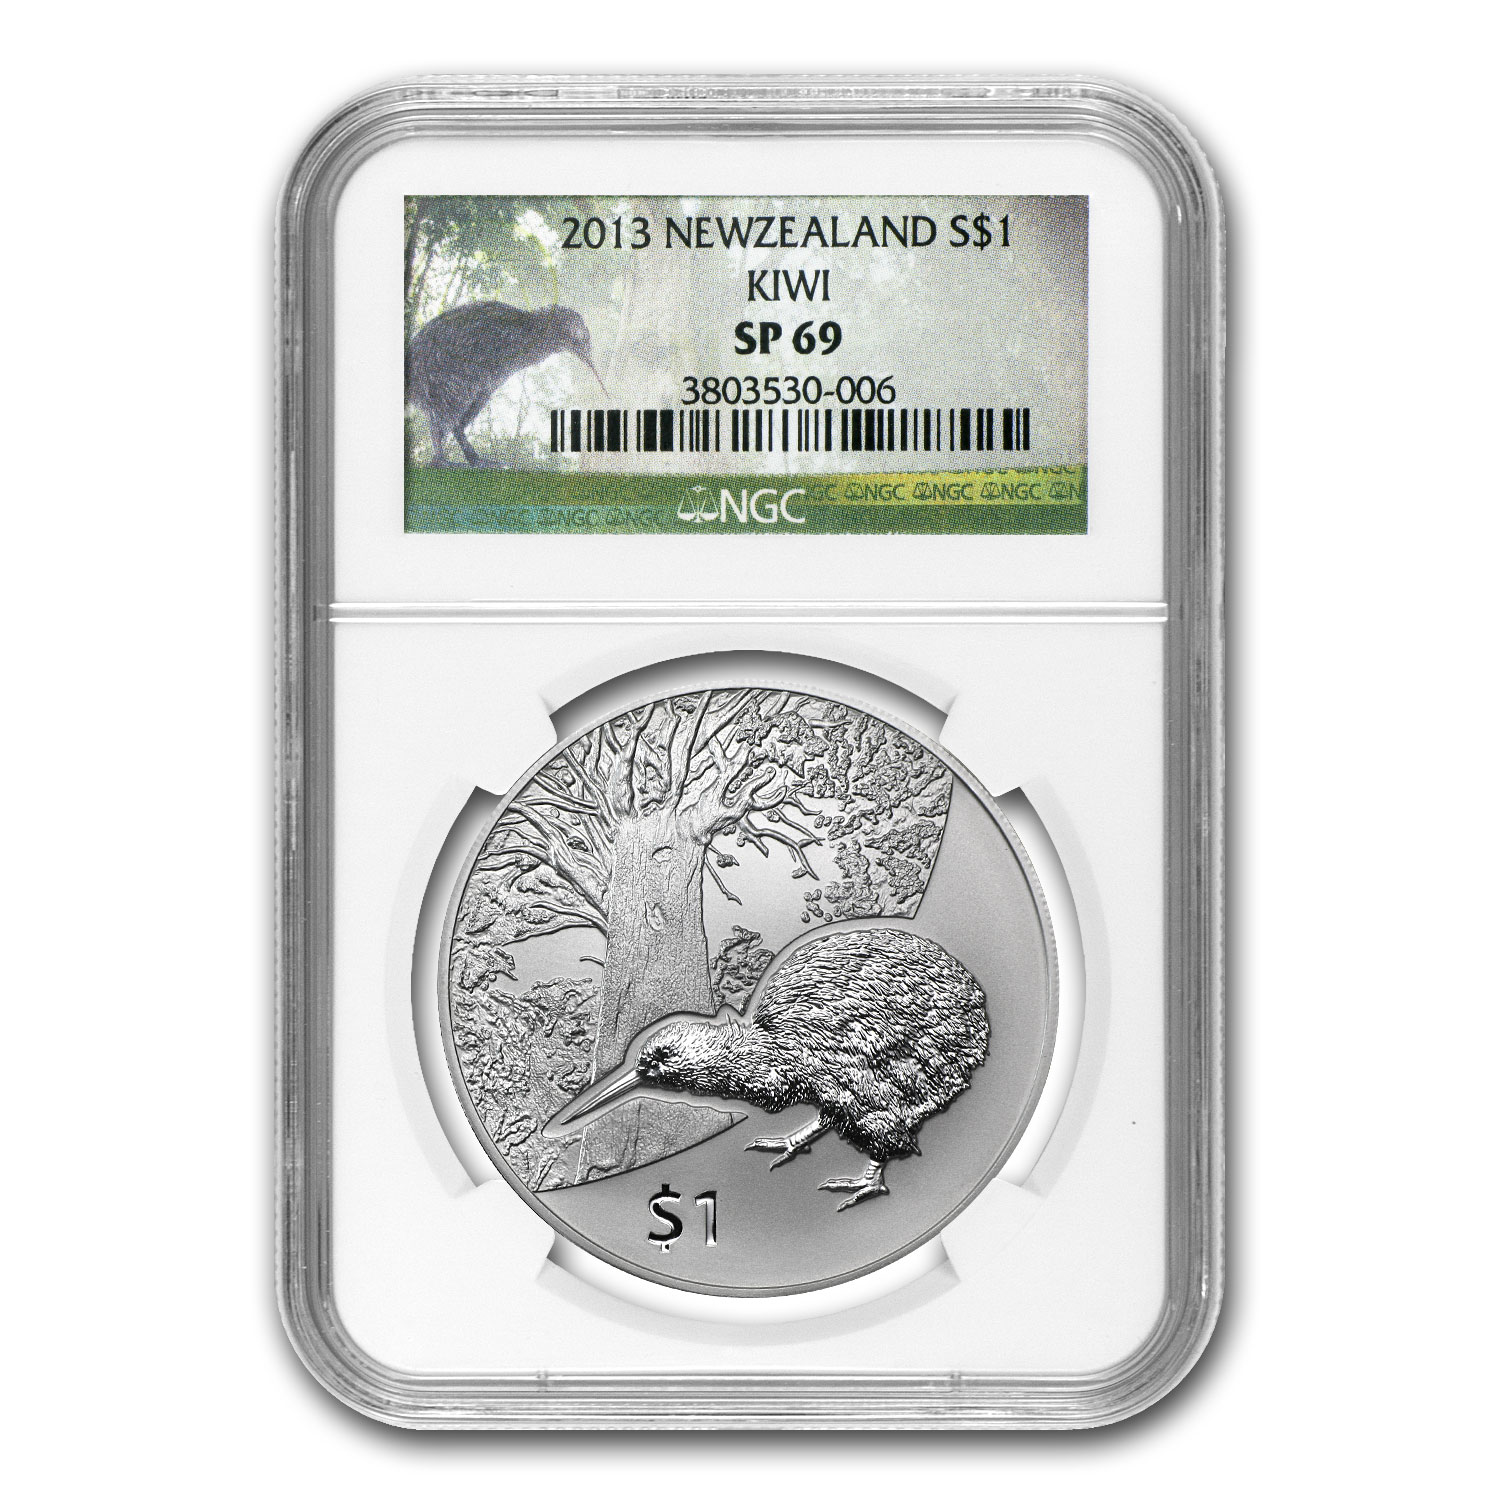 2013 1 oz Silver New Zealand Treasures $1 Kiwi NGC SP69